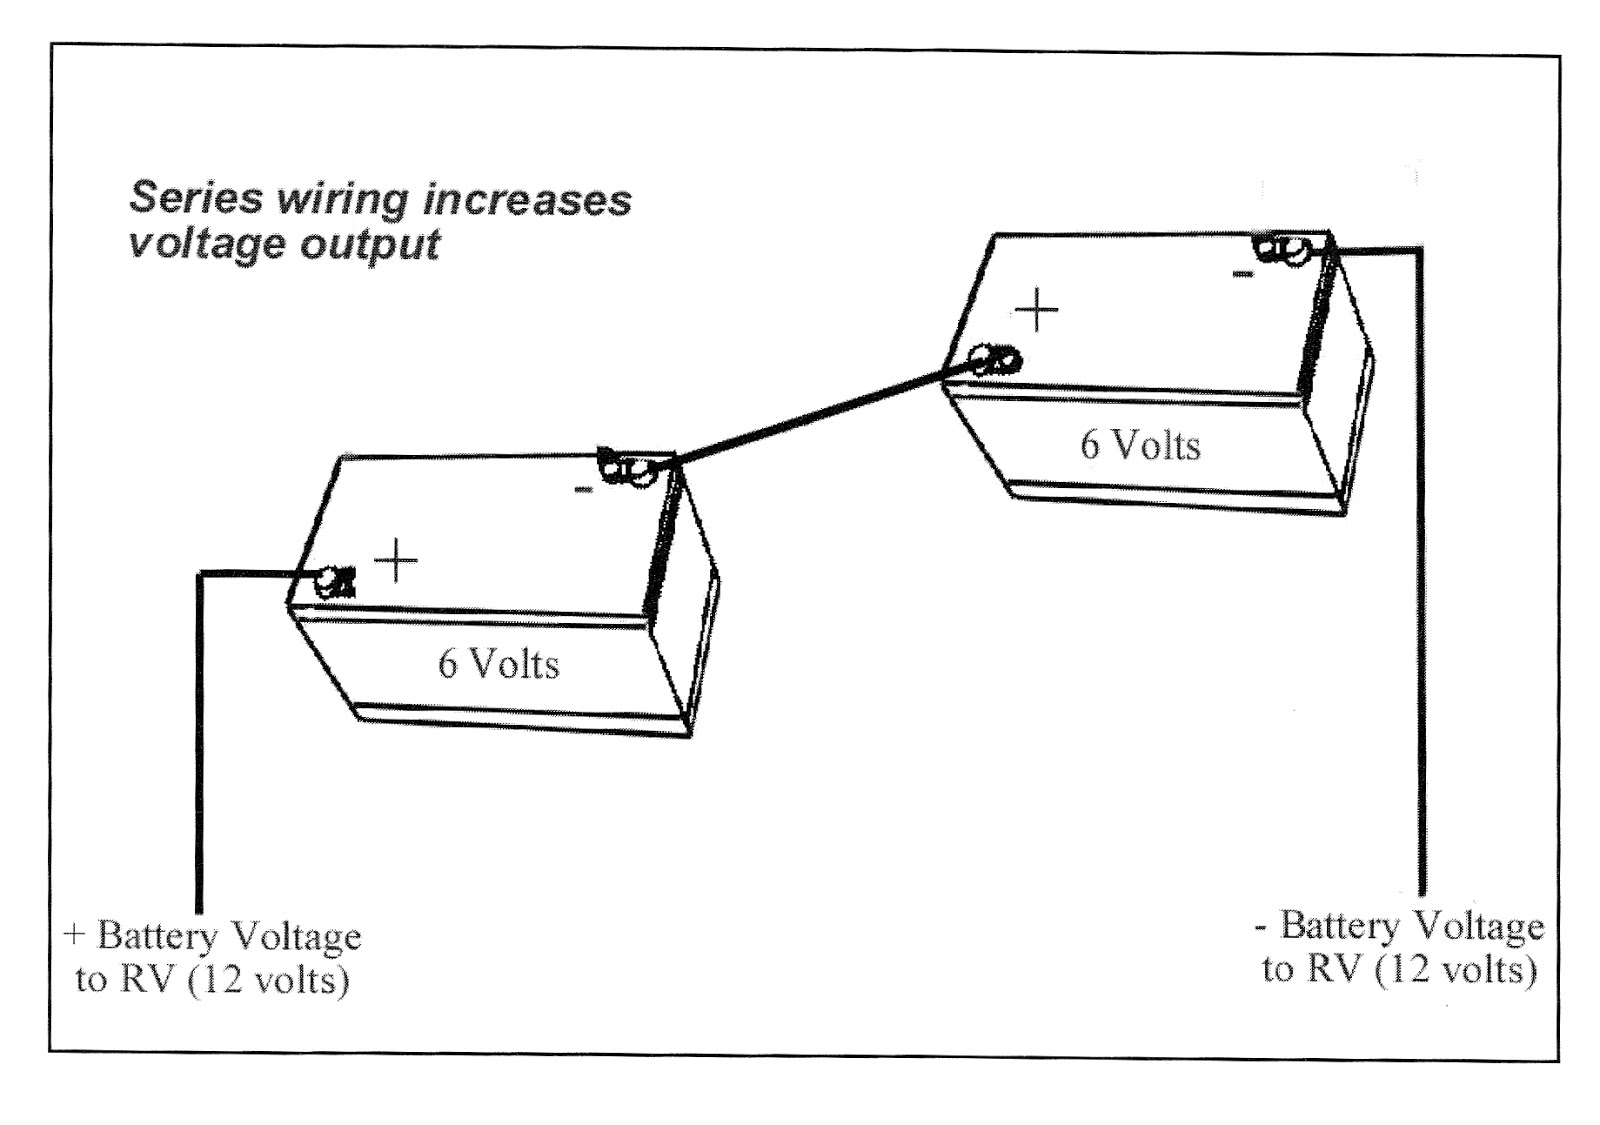 battery+series+wiring+diagram penny's tuppence (2 cents in brit) rv transmission 12v to 6v 12 volt battery wiring diagram at gsmx.co